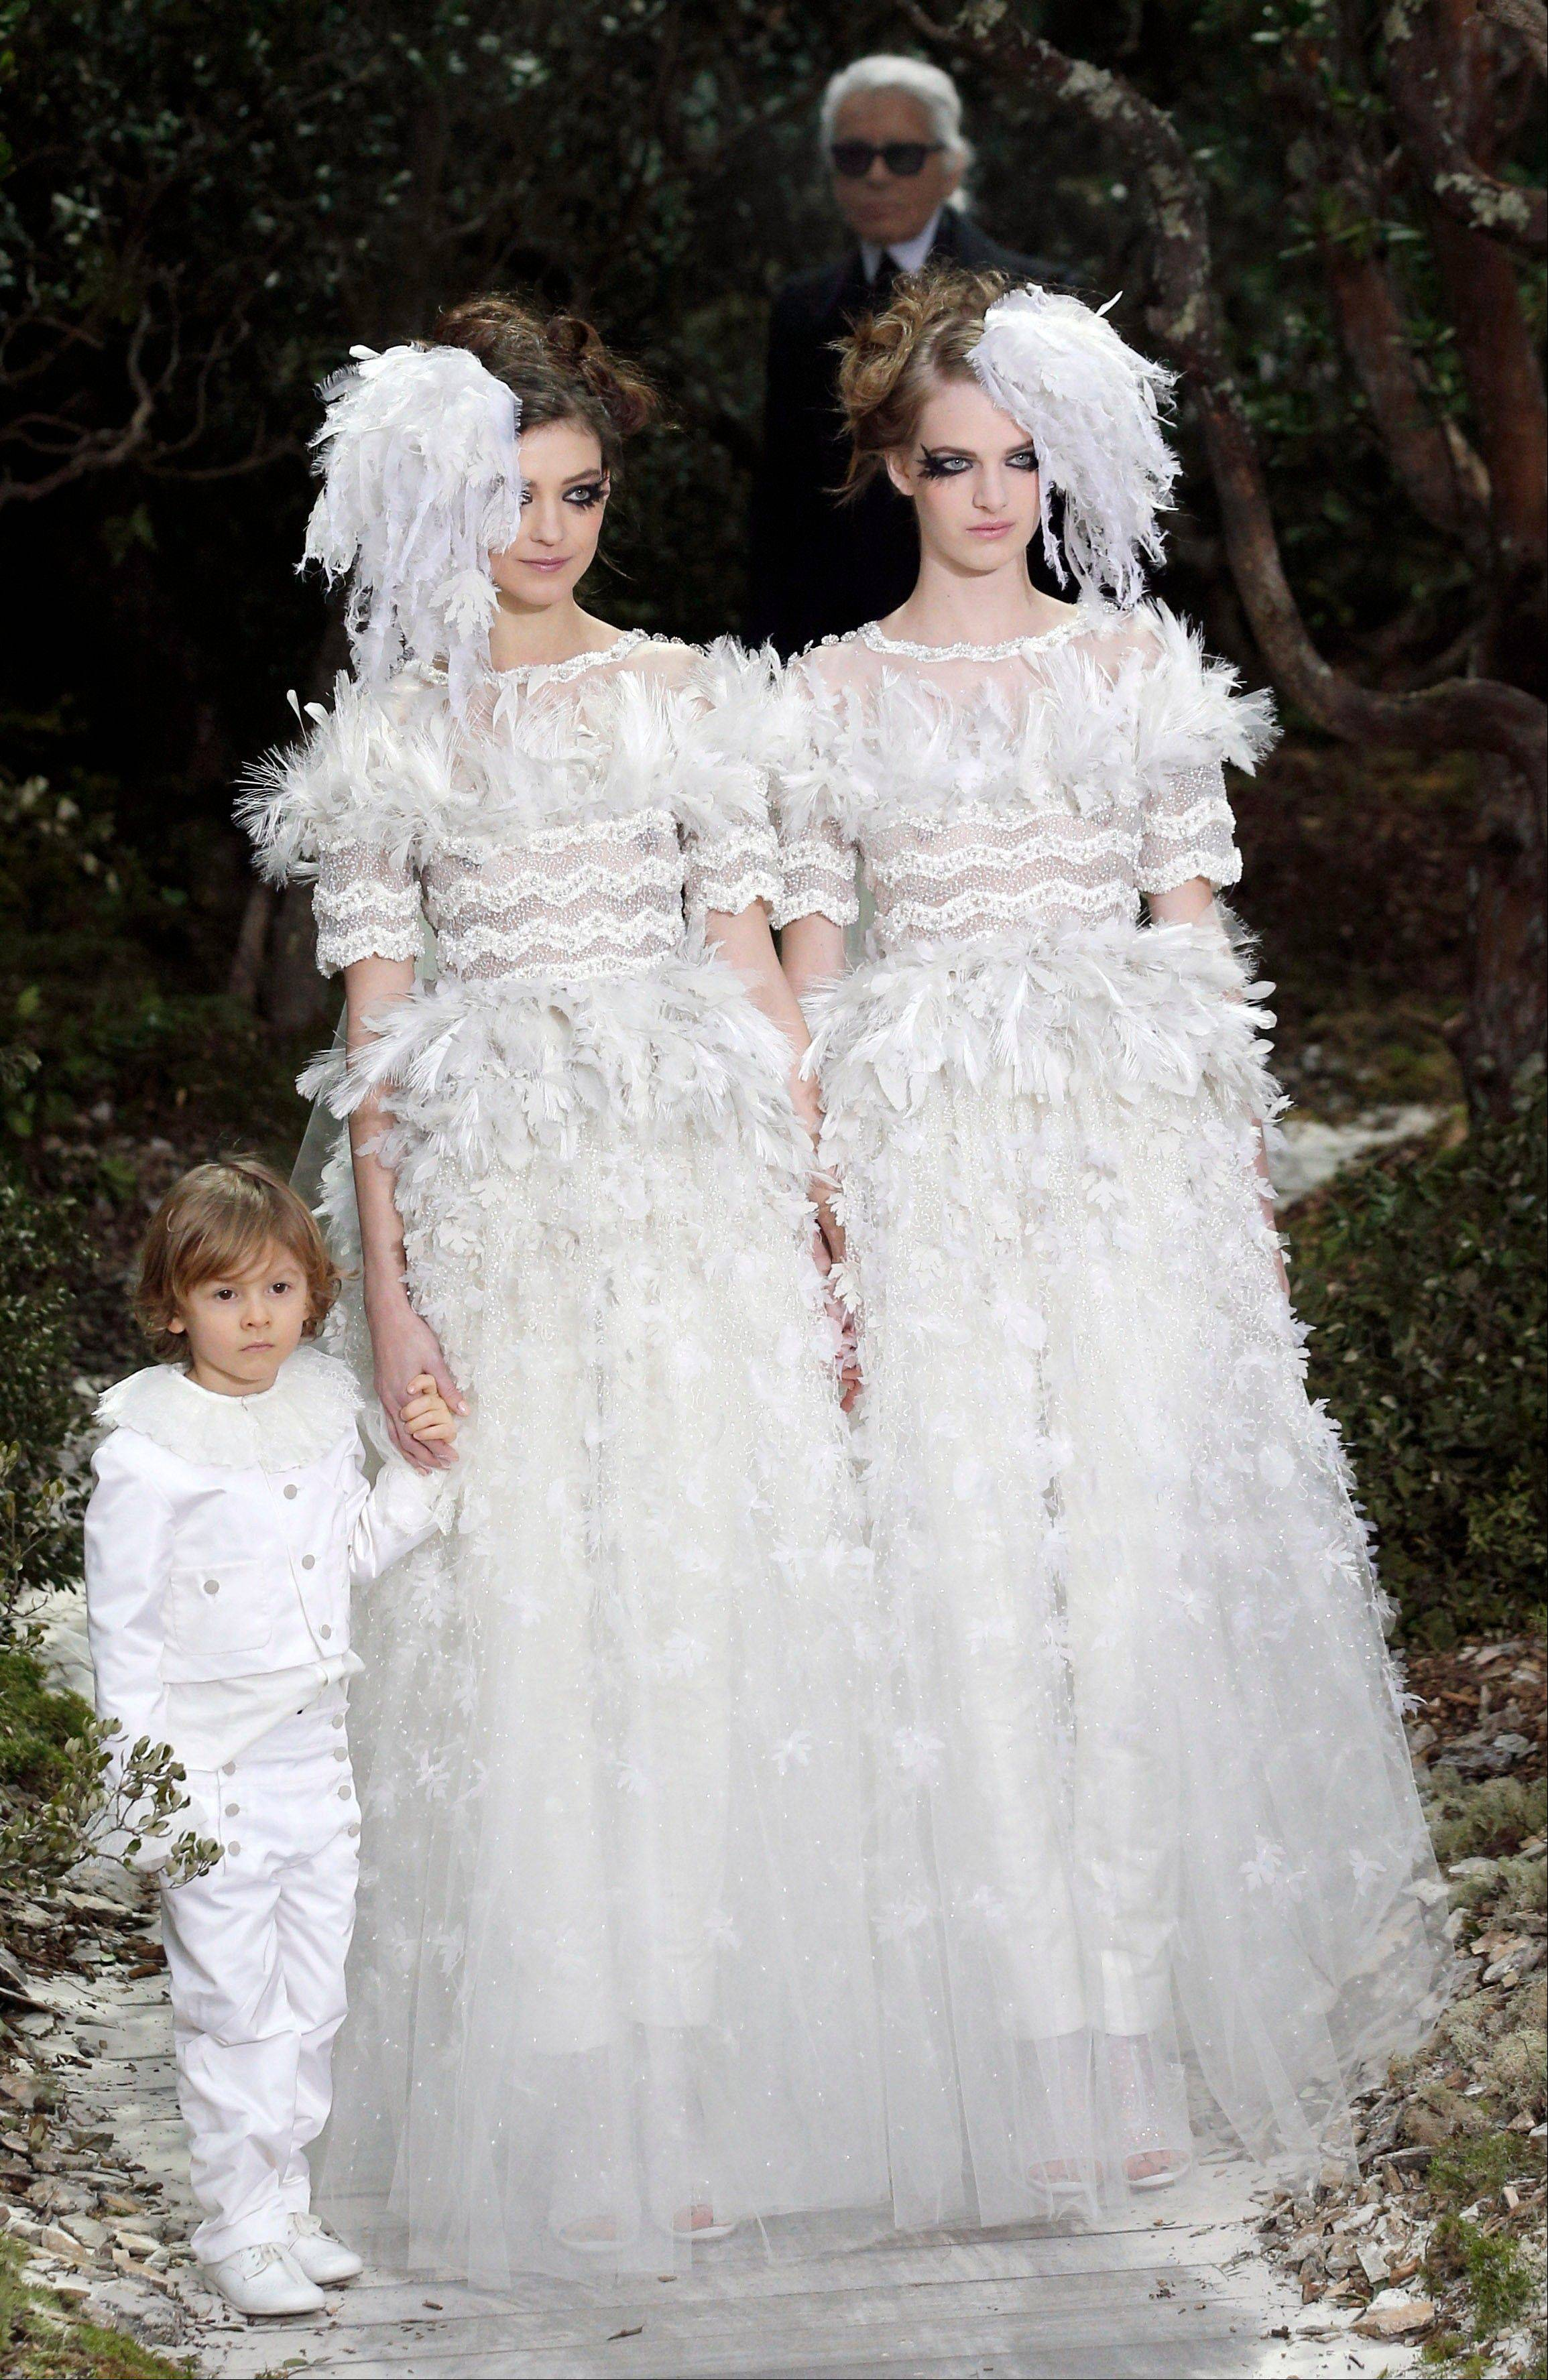 This Jan. 22, 2013 file photo shows two models wear wedding gowns by German fashion designer Karl Lagerfeld for Chanel's Spring Summer 2013 Haute Couture fashion collection, in Paris. Lagerfeld used fashion to support a controversial French gay marriage law, sending two brides together down the catwalk.